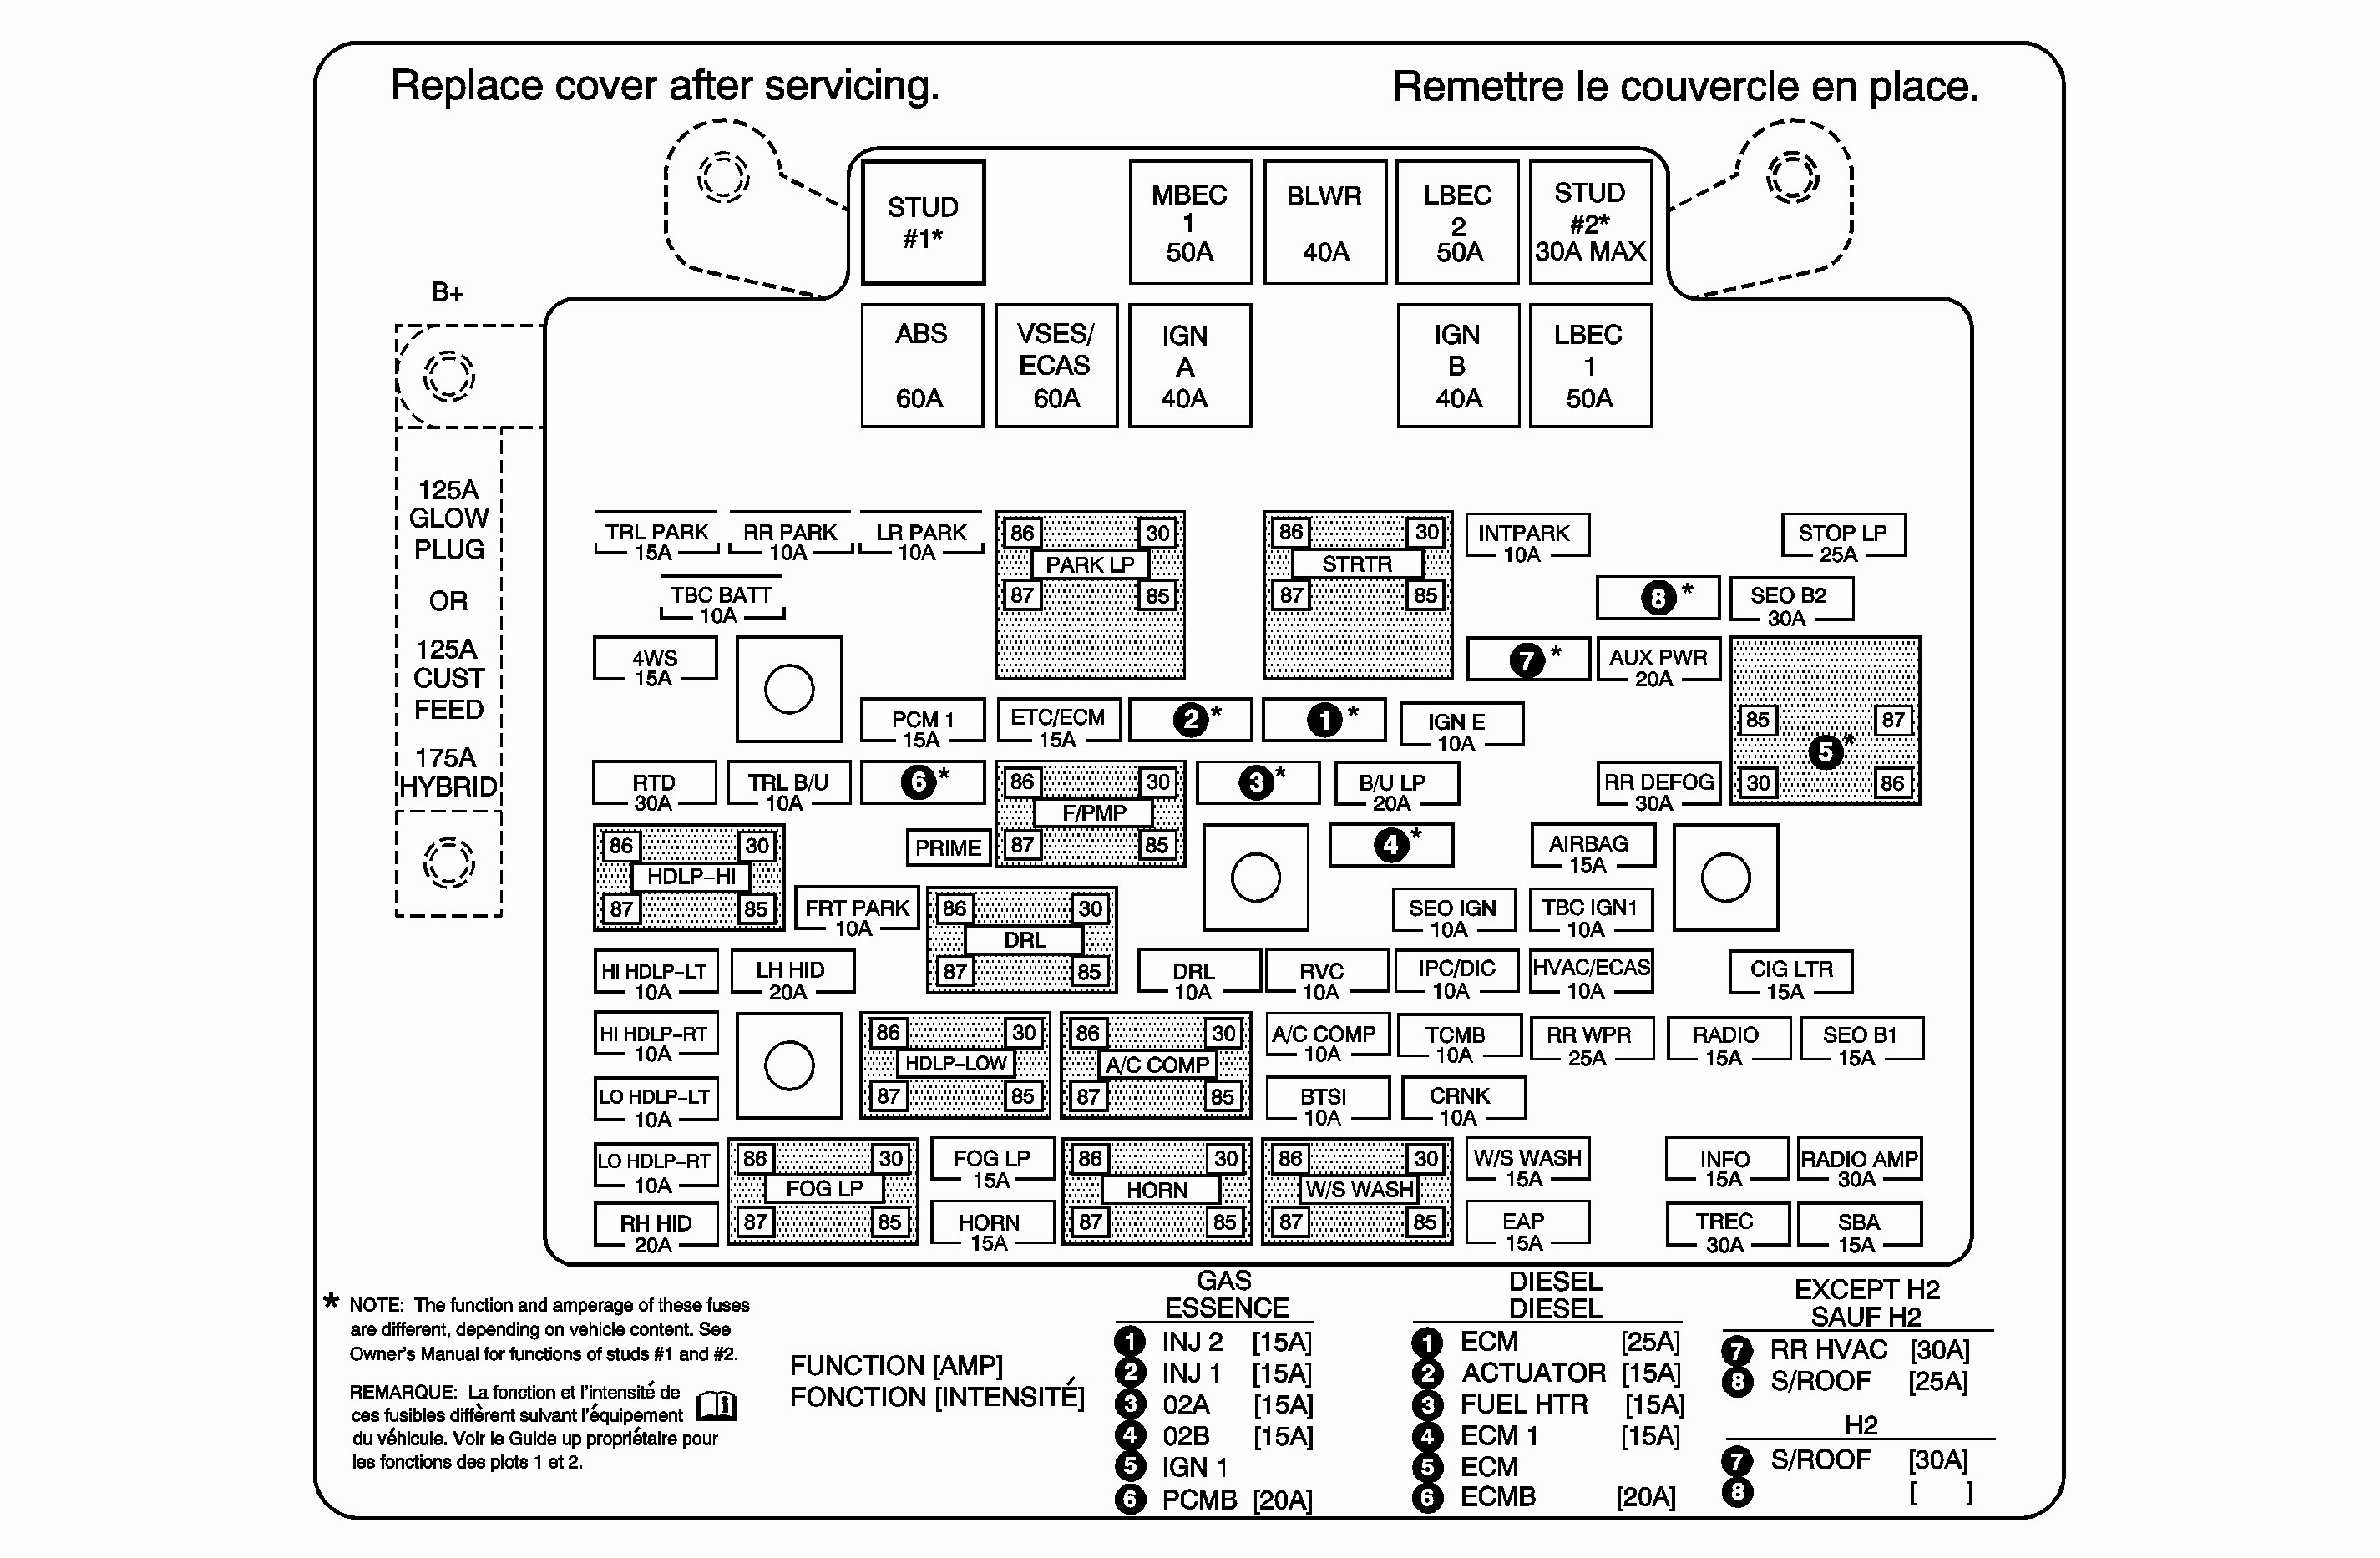 2004 Chevy Tahoe Fuse Box Diagram As Well 2005 Chevy Tahoe Fuse Box